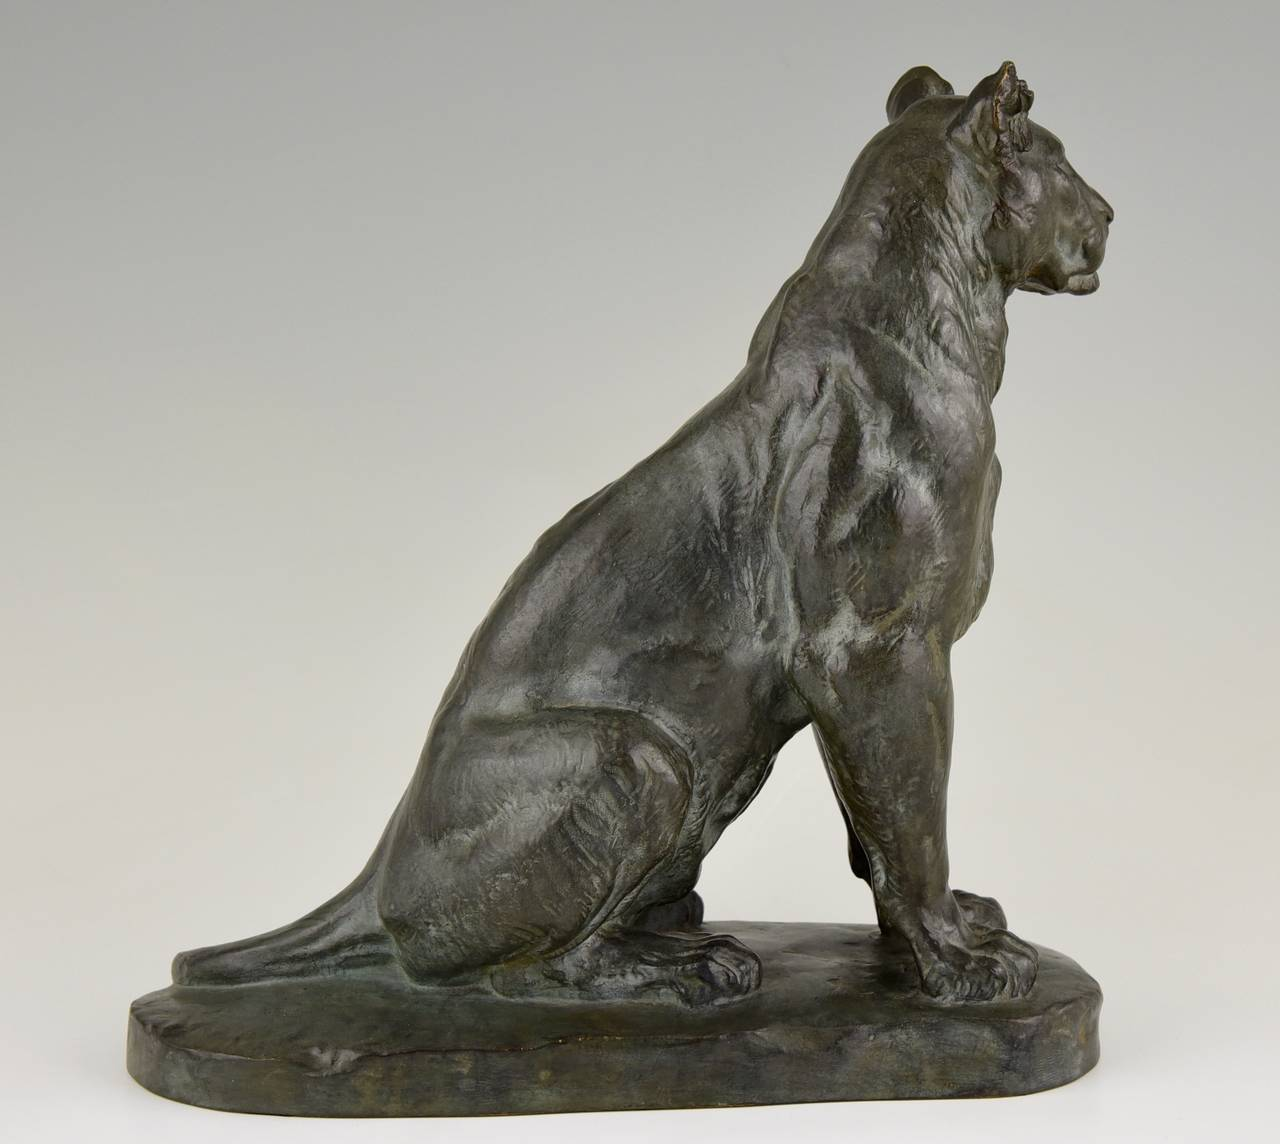 Panther Statue For Sale French Bronze Panther Sculpture By Charles Valton 1910 At